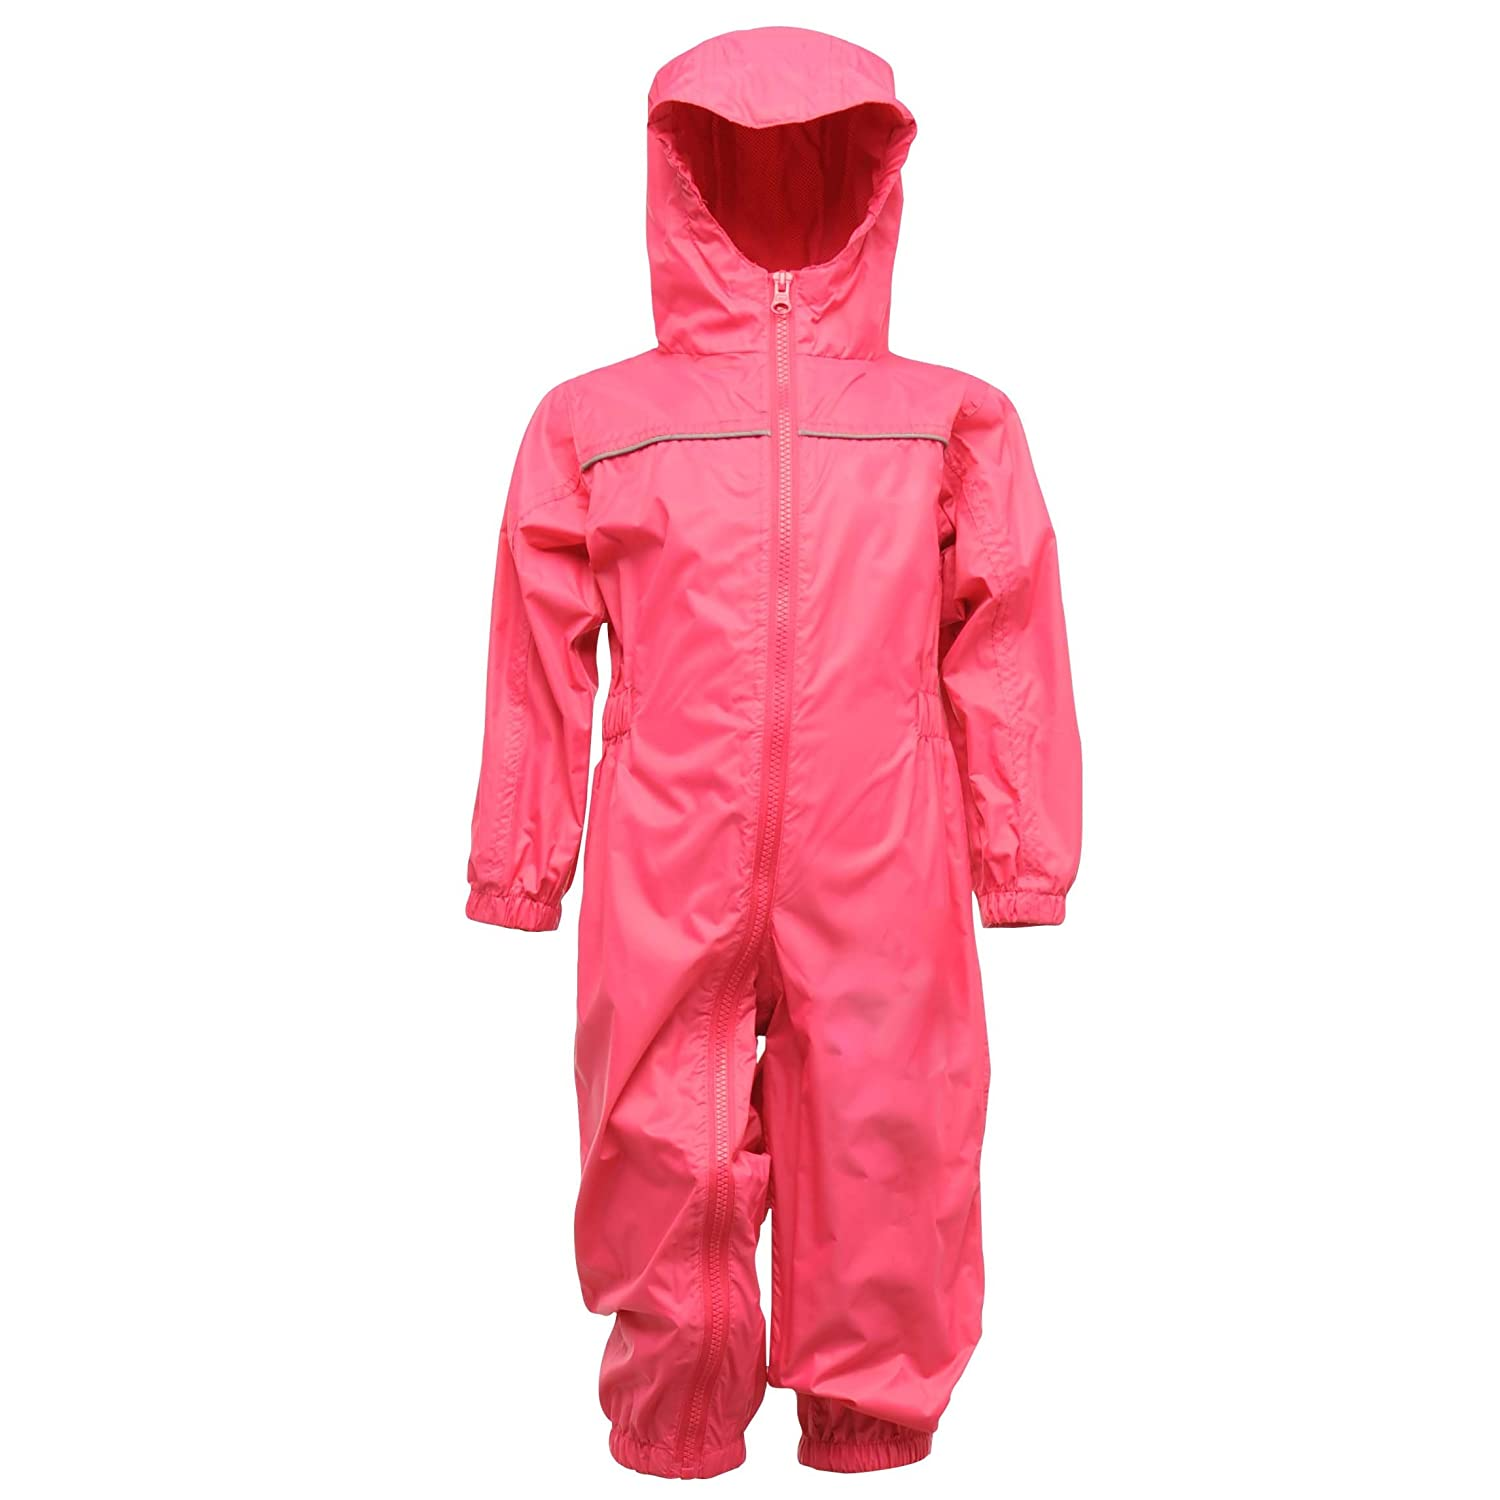 Jem Regatta Professional Baby//Kids Paddle All In One Rain Suit 18-24 Months